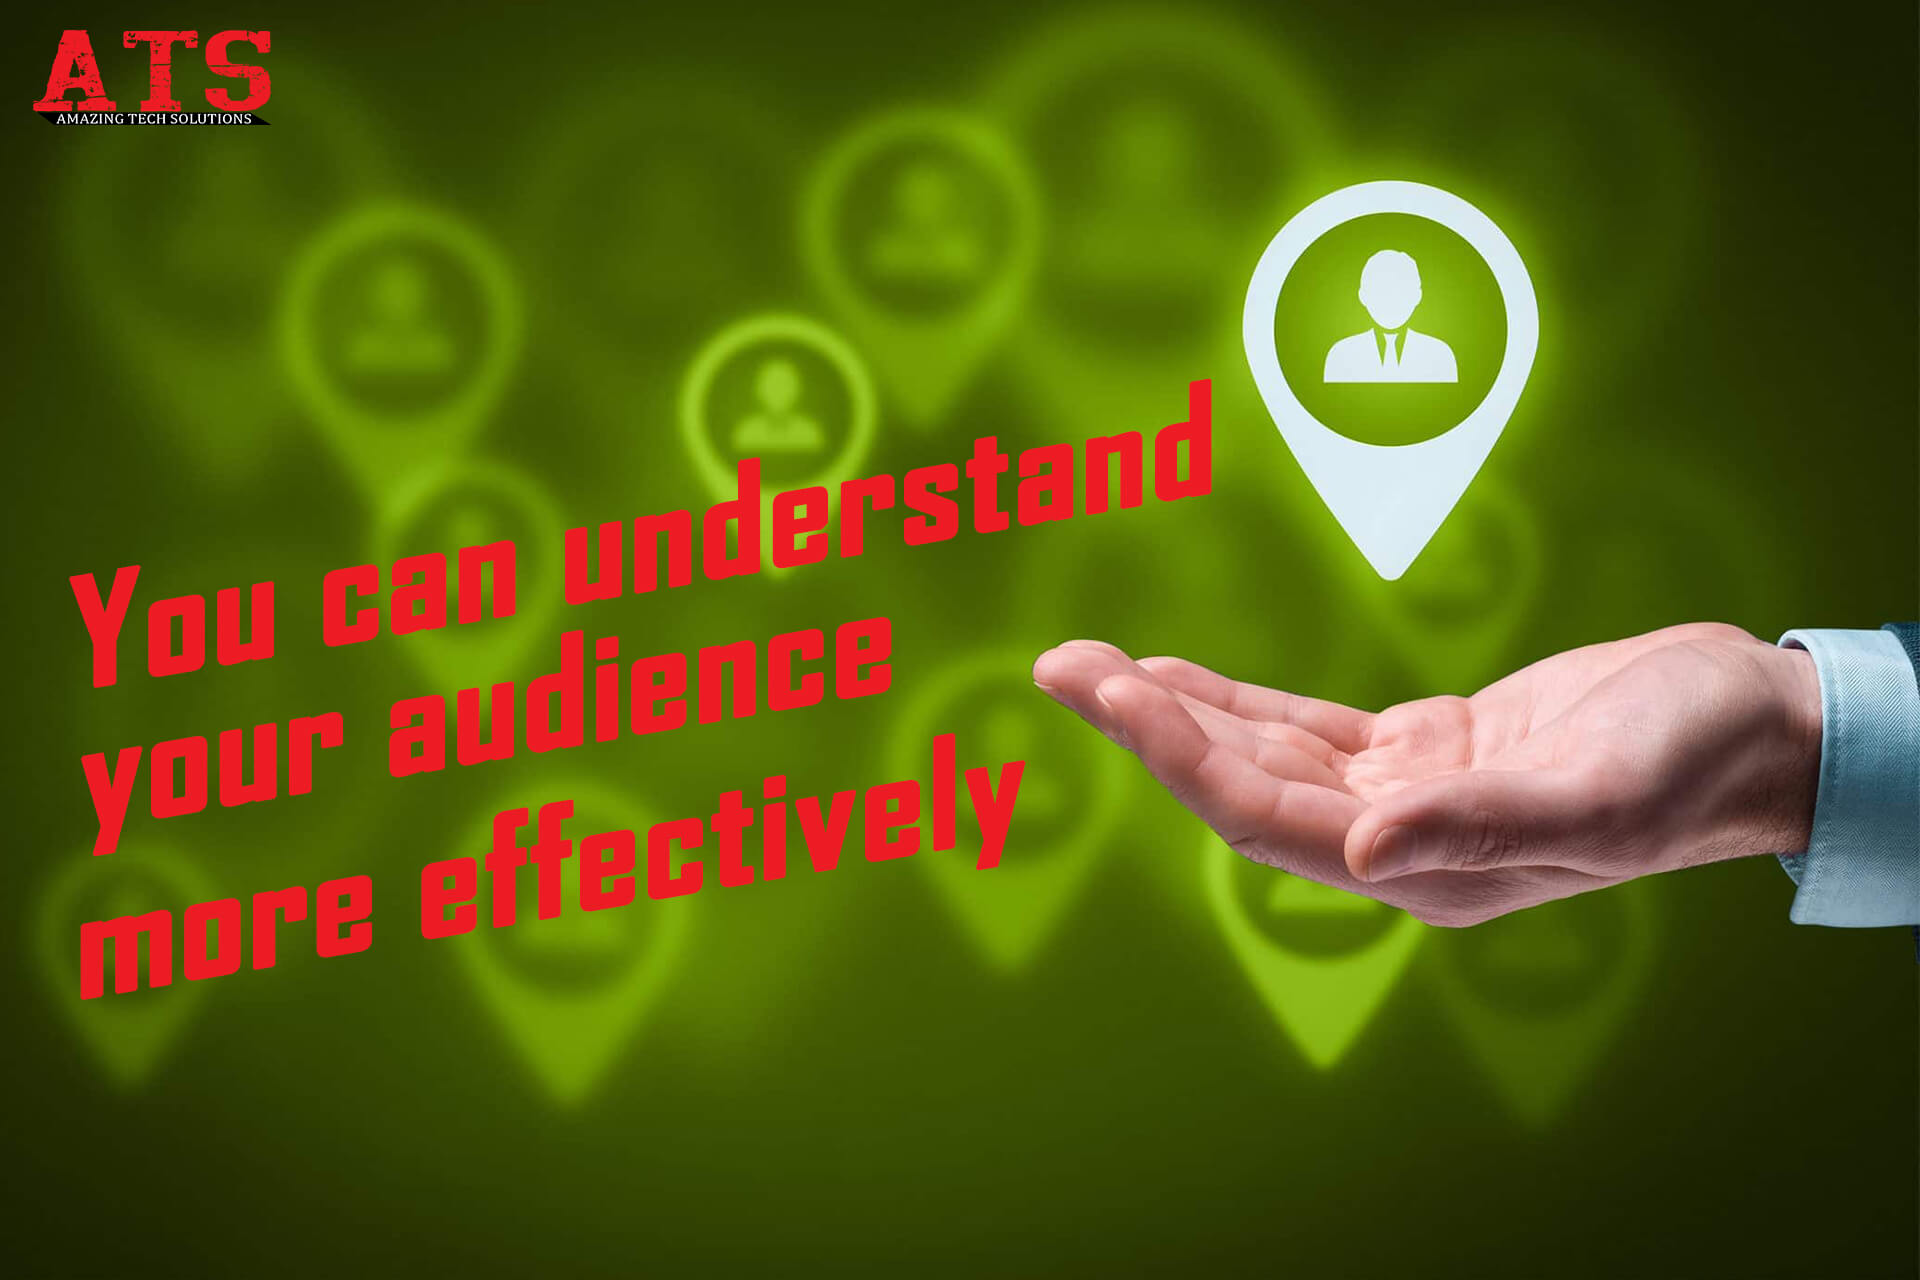 You can understand your audience more effectively